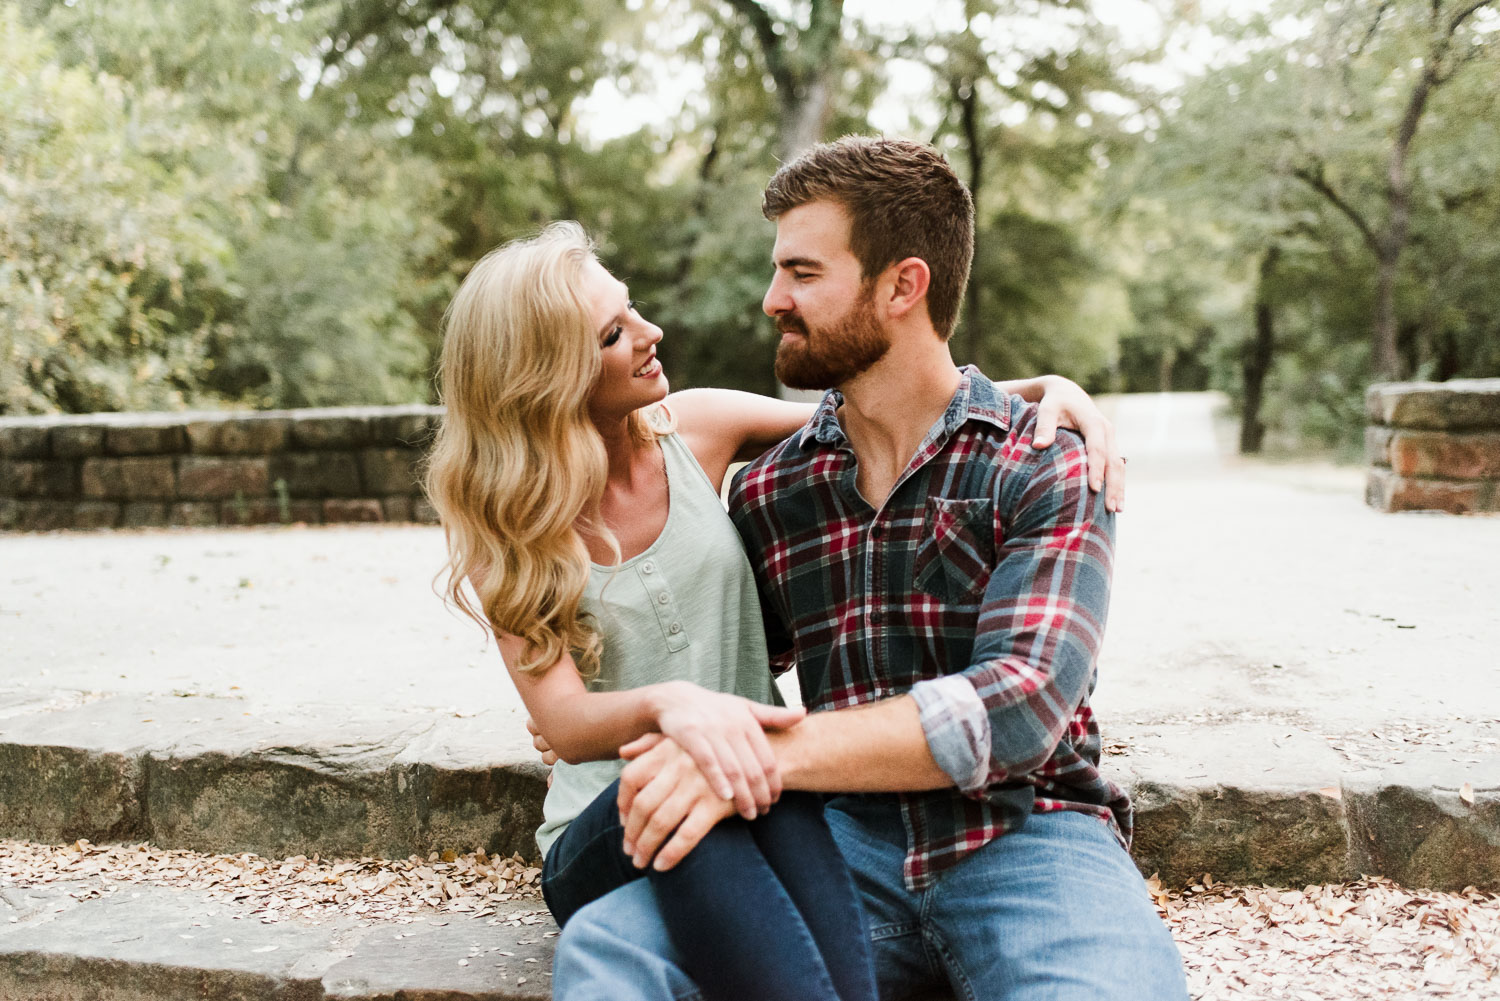 josh - lindsey - engagement - photos - alrington - texas - river - legacy - park-26.jpg